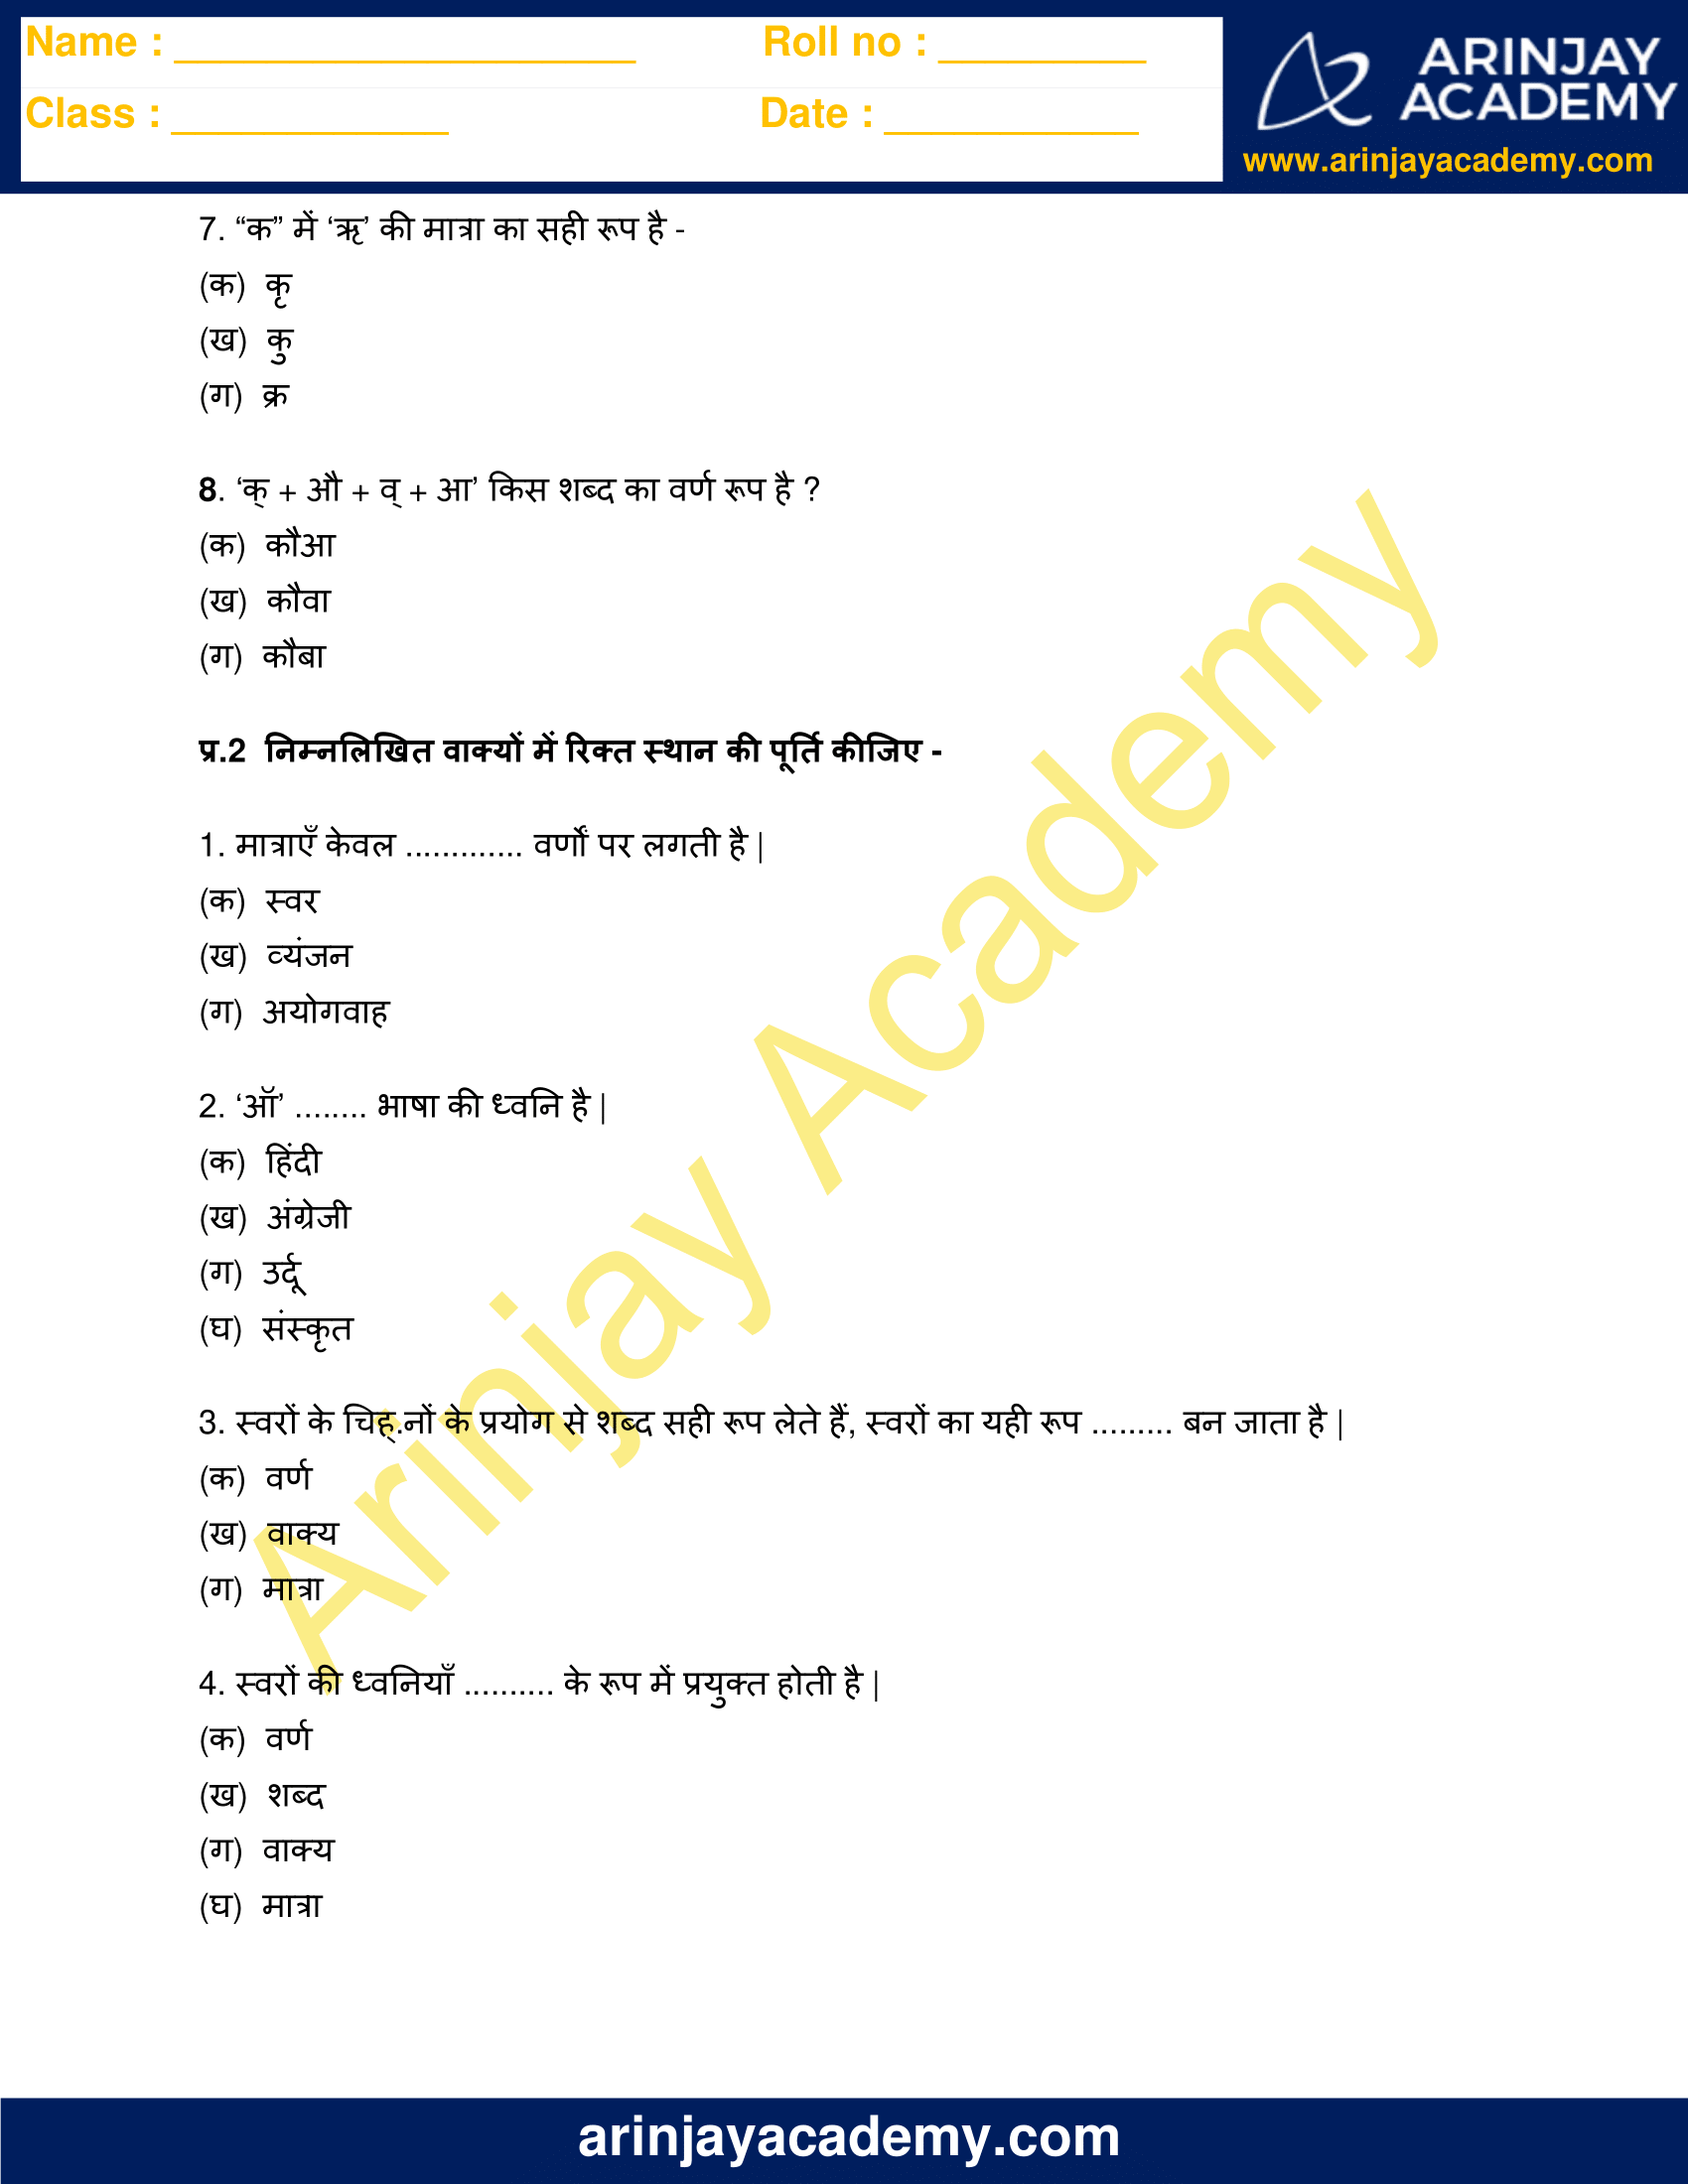 Hindi Matra Gyan Worksheets for Class 3 image 2